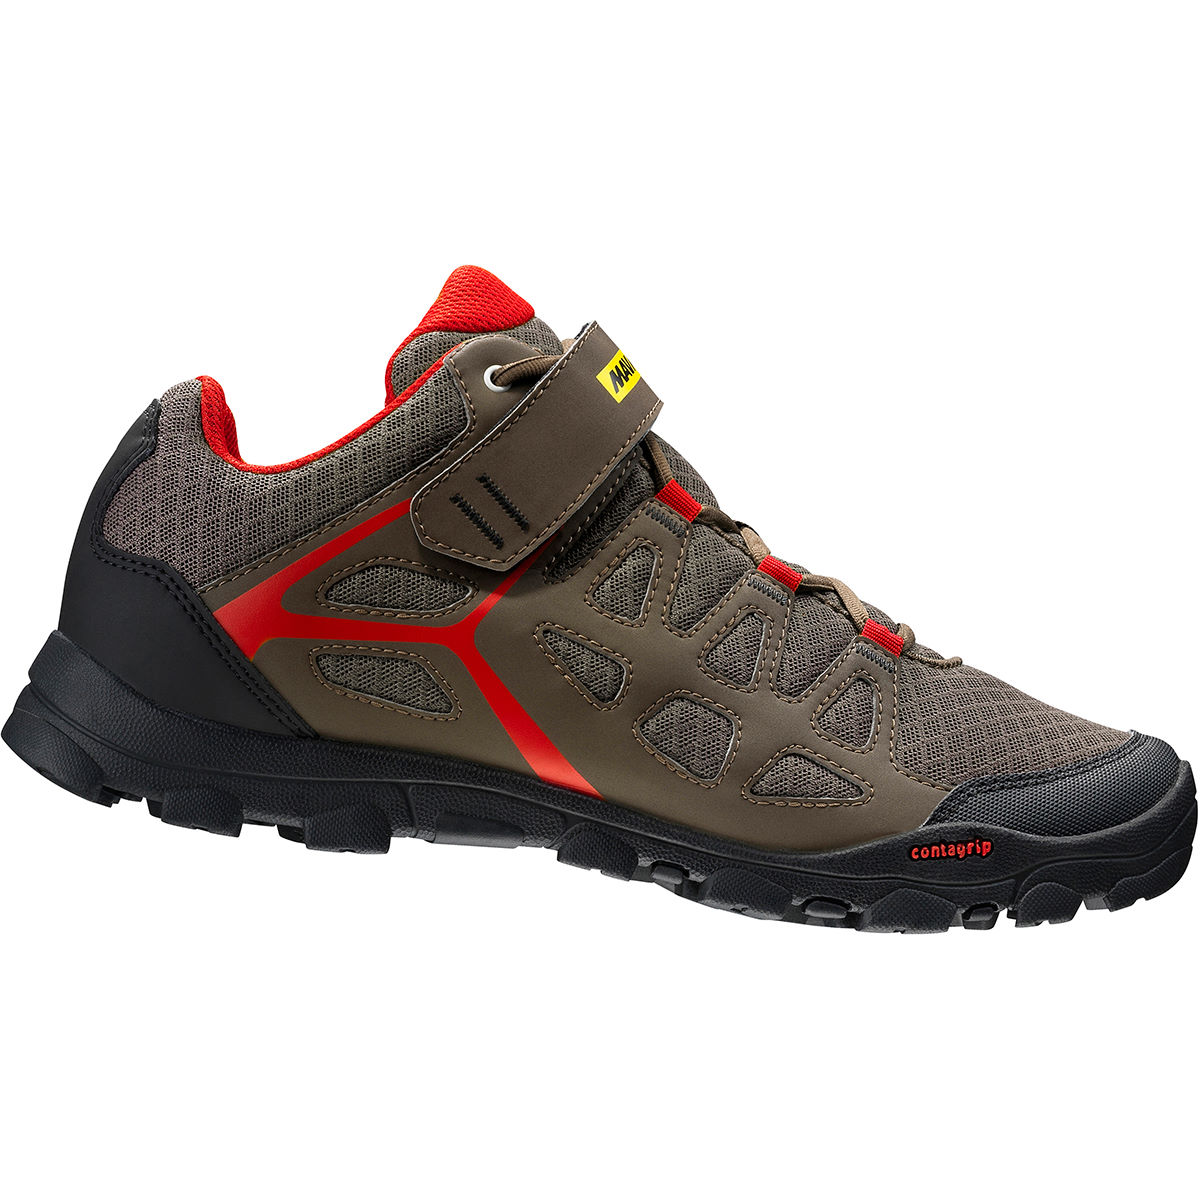 Chaussures VTT Mavic Crossride SPD - UK 7 Canteen - Fiery Red